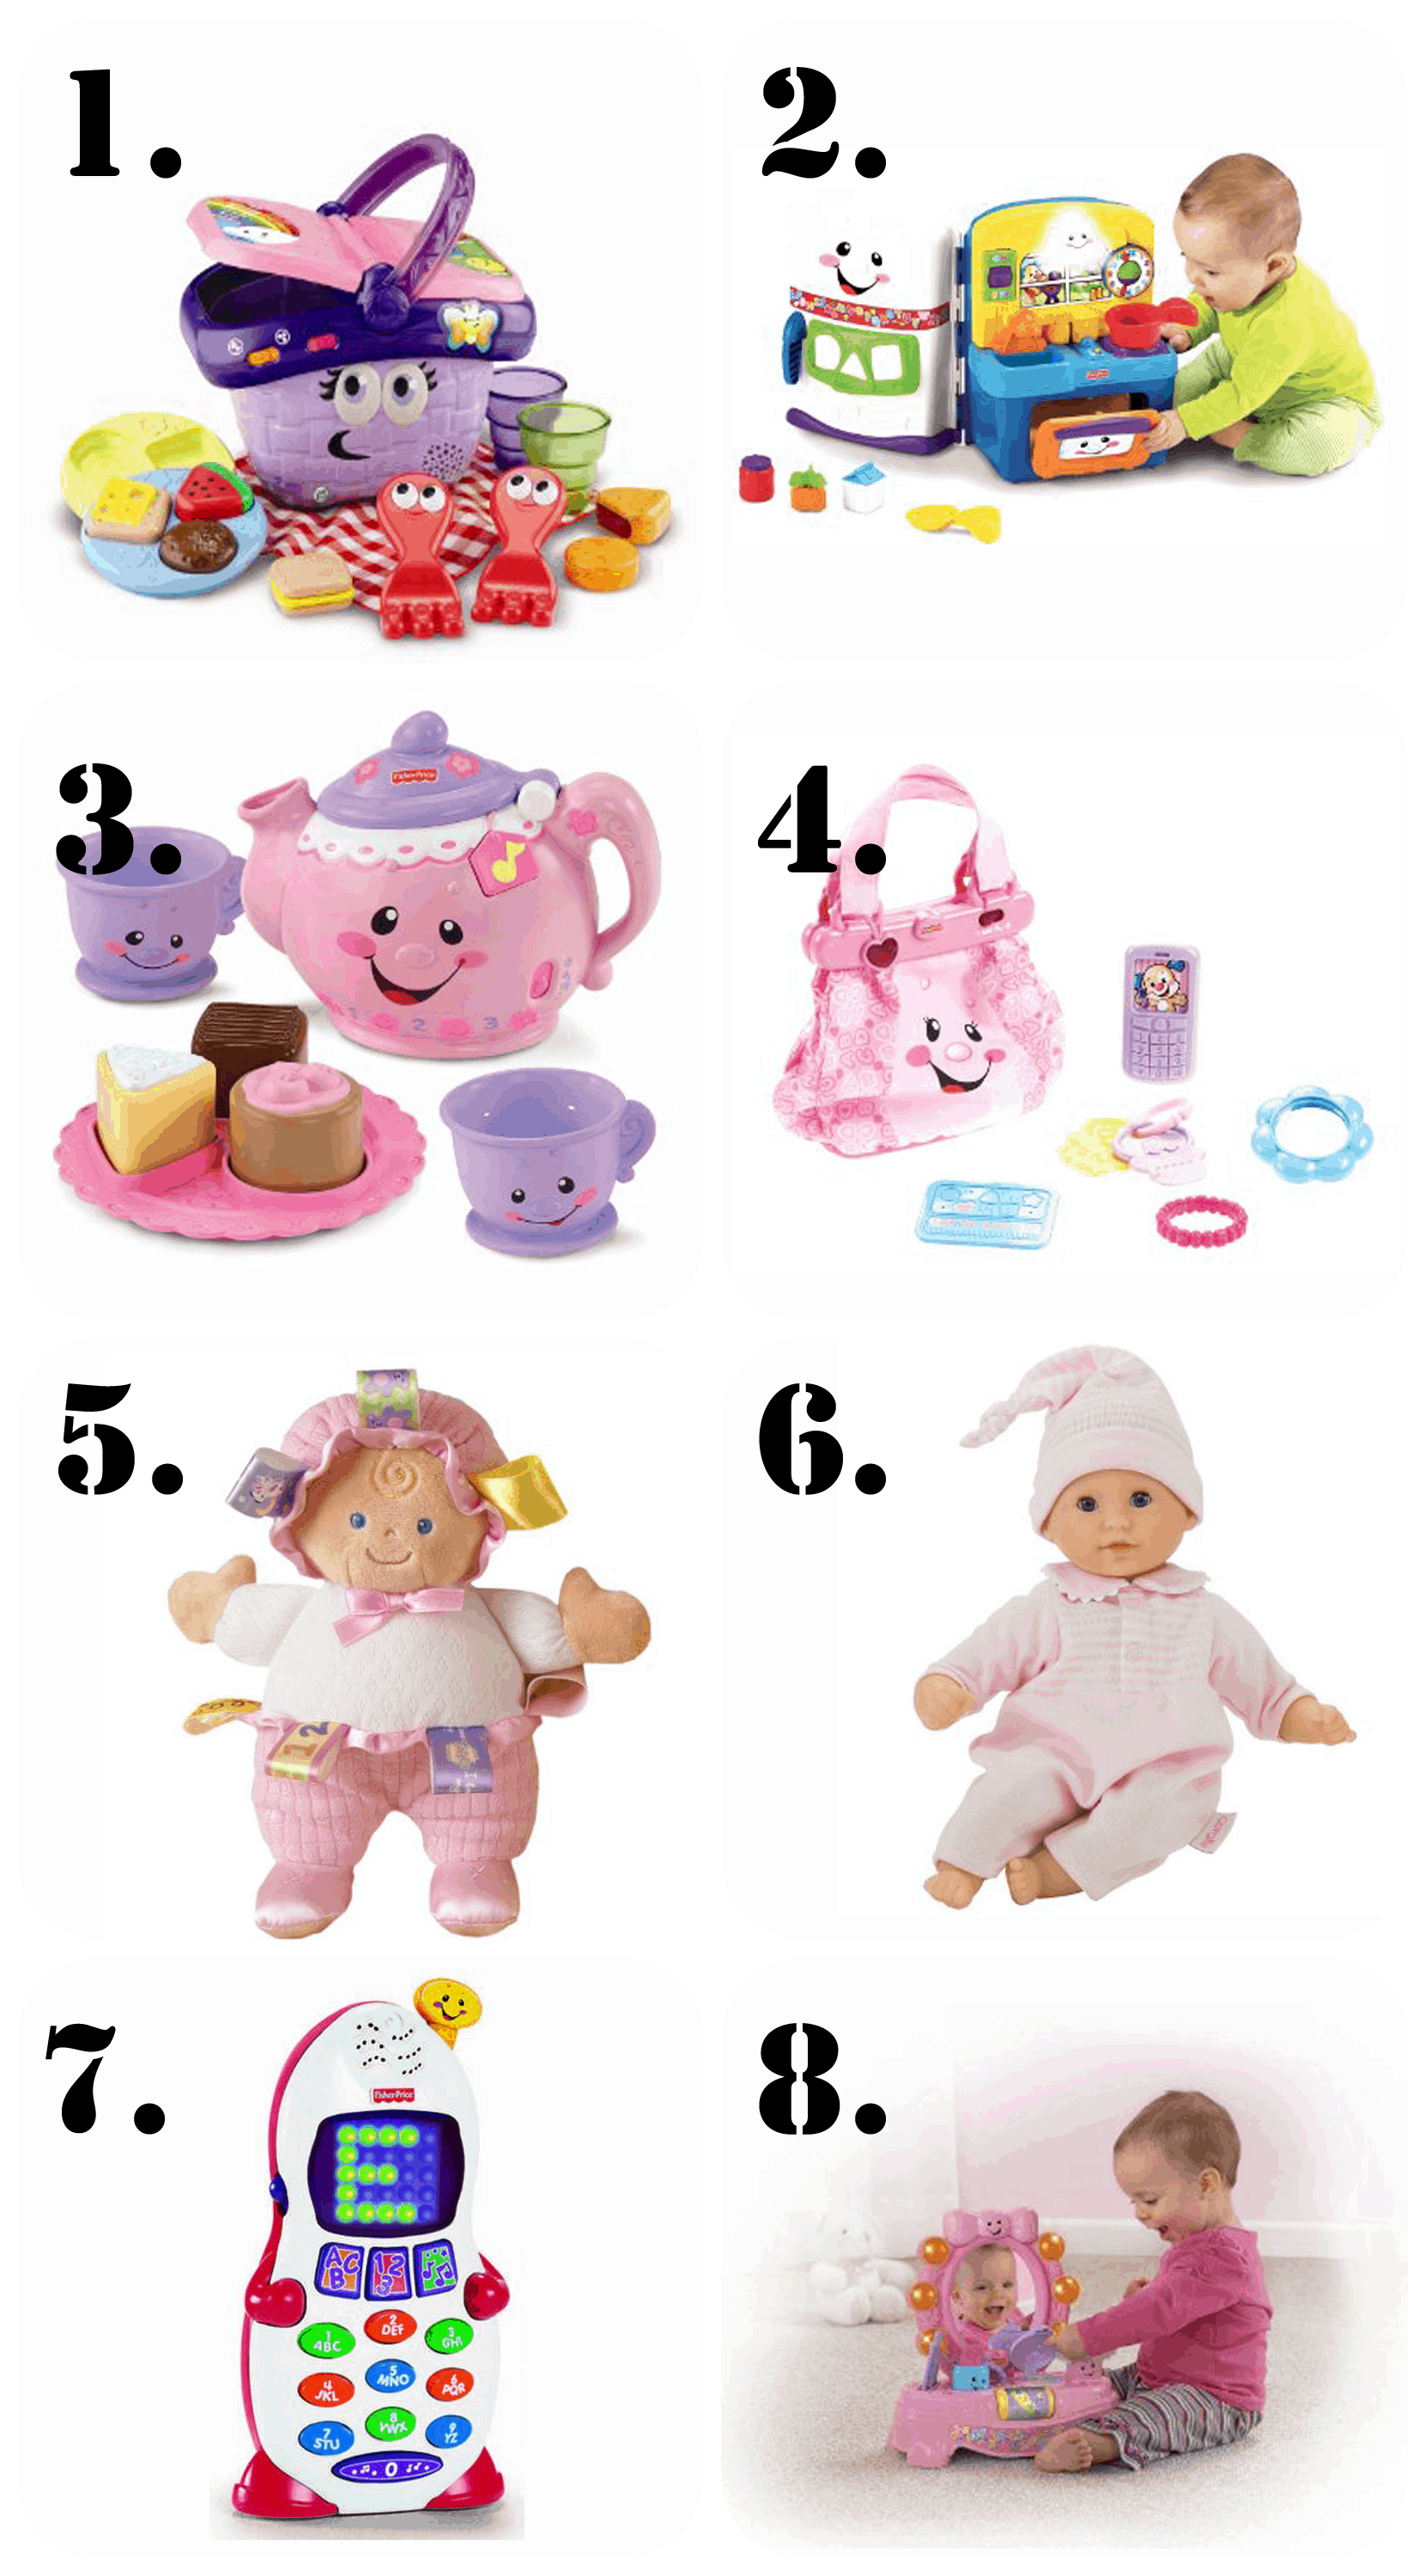 The Ultimate List of Gift Ideas for a 1 Year Old Girl! | The ...